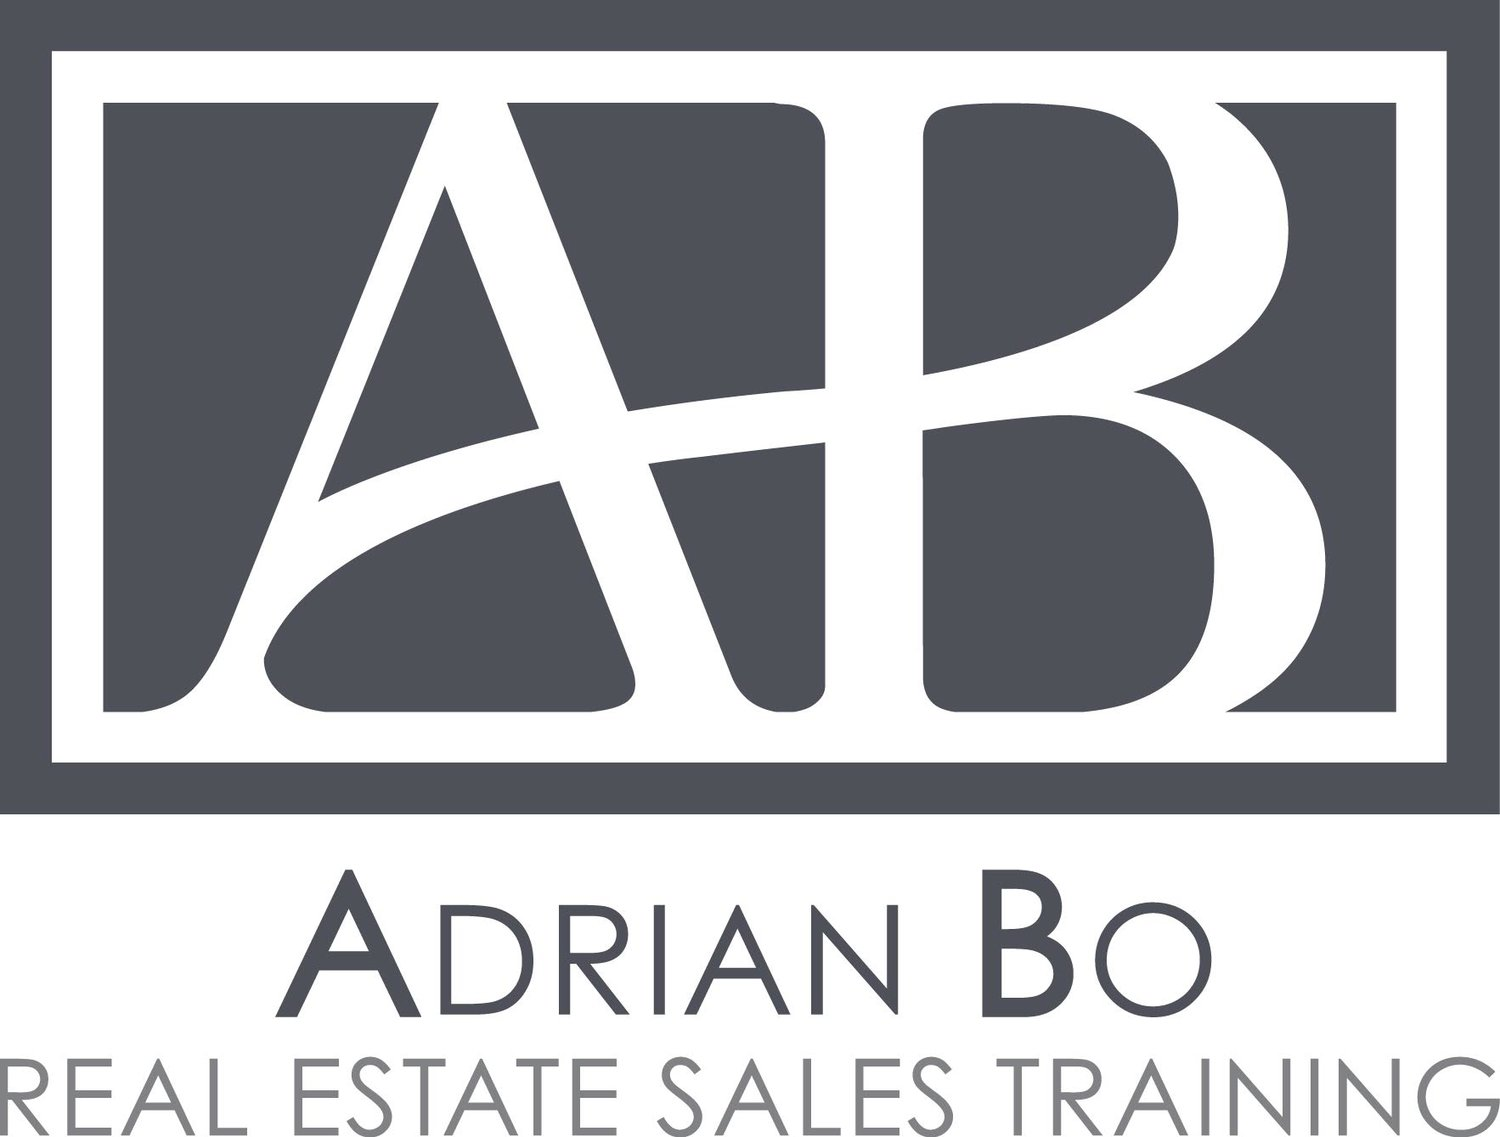 Adrian Bo Real Estate Sales Training